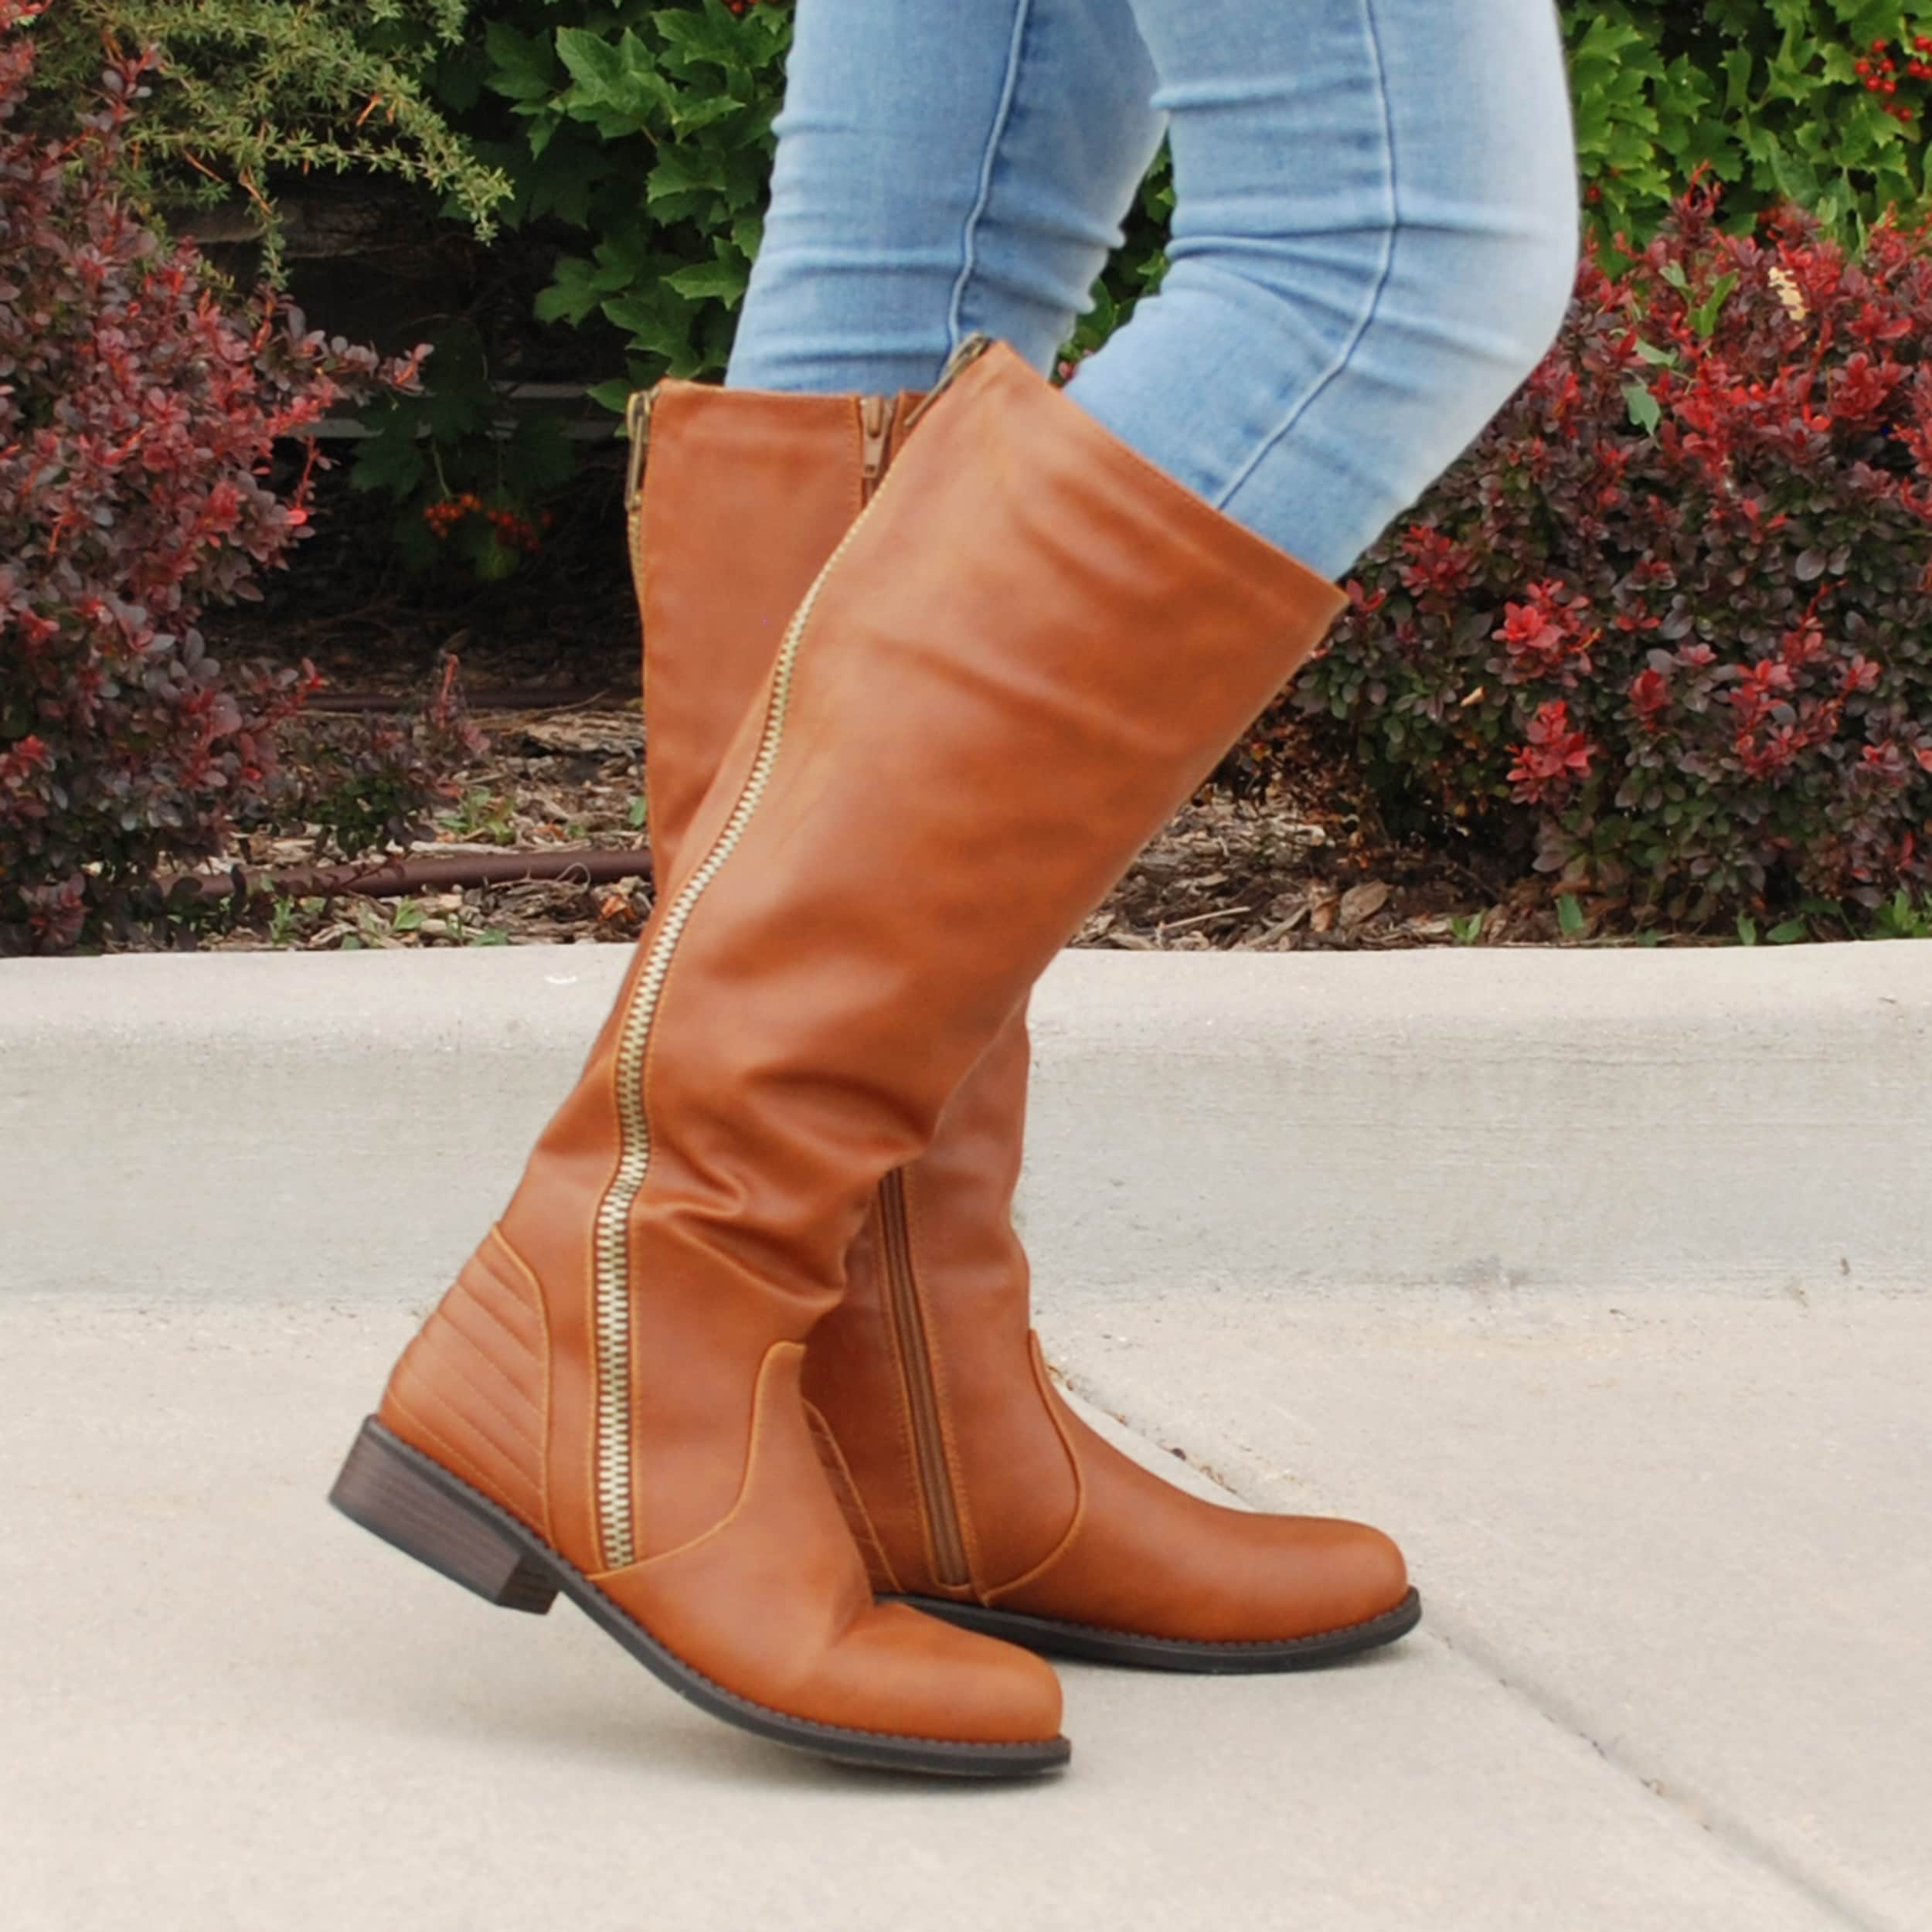 6a0037766d56 Shop Journee Collection Women s  Slant  Regular and Wide-calf Faux Leather  Boots - Free Shipping On Orders Over  45 - Overstock - 10422697